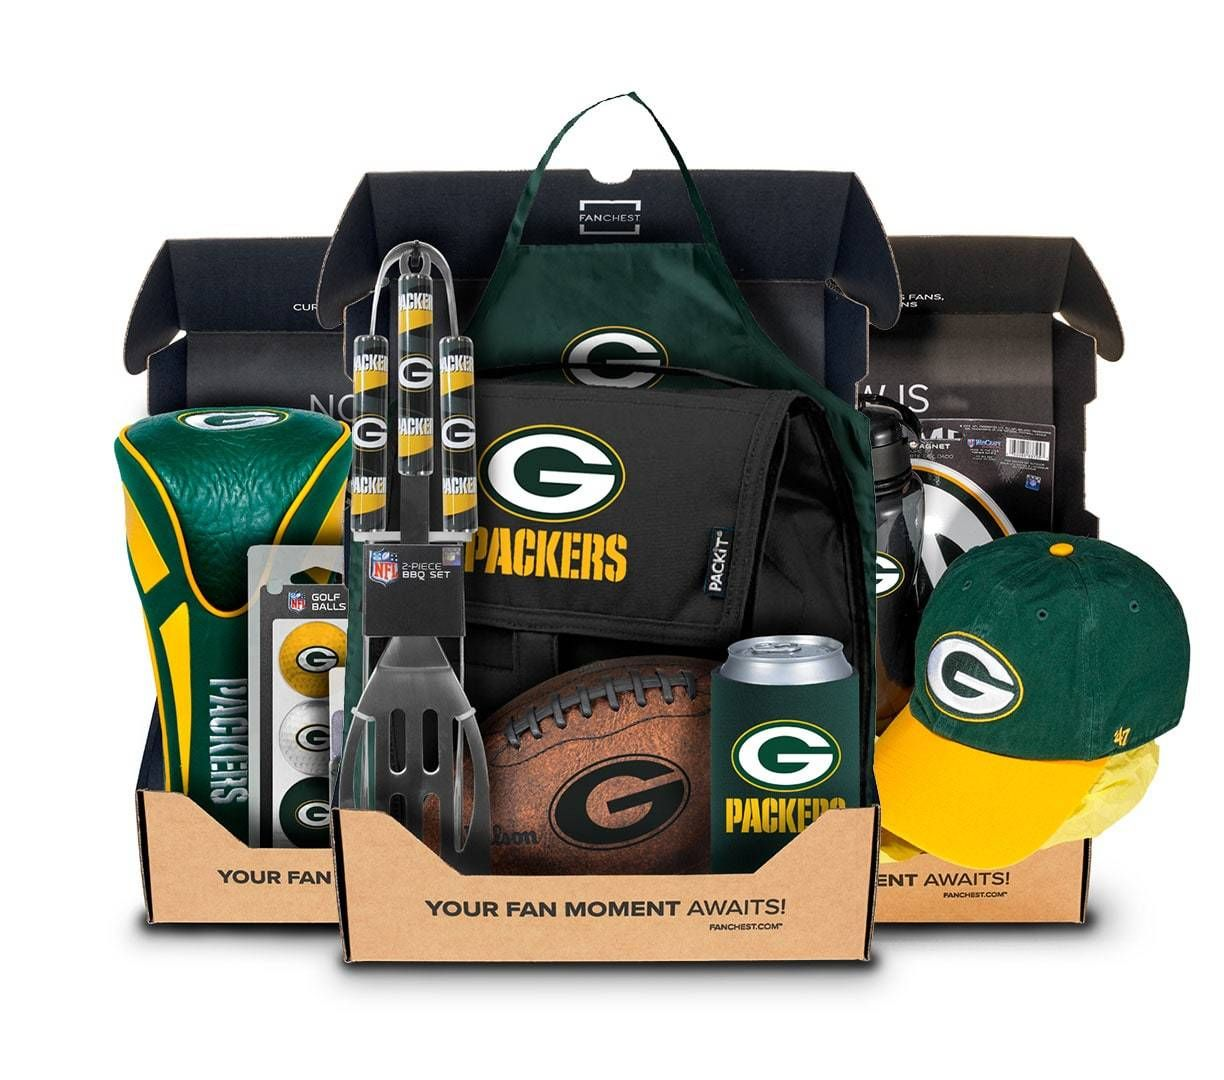 Packers Themed Gift Box Golf Tailgate Gear For Fans Green Bay Packers Gifts Packers Gifts Green Bay Packers